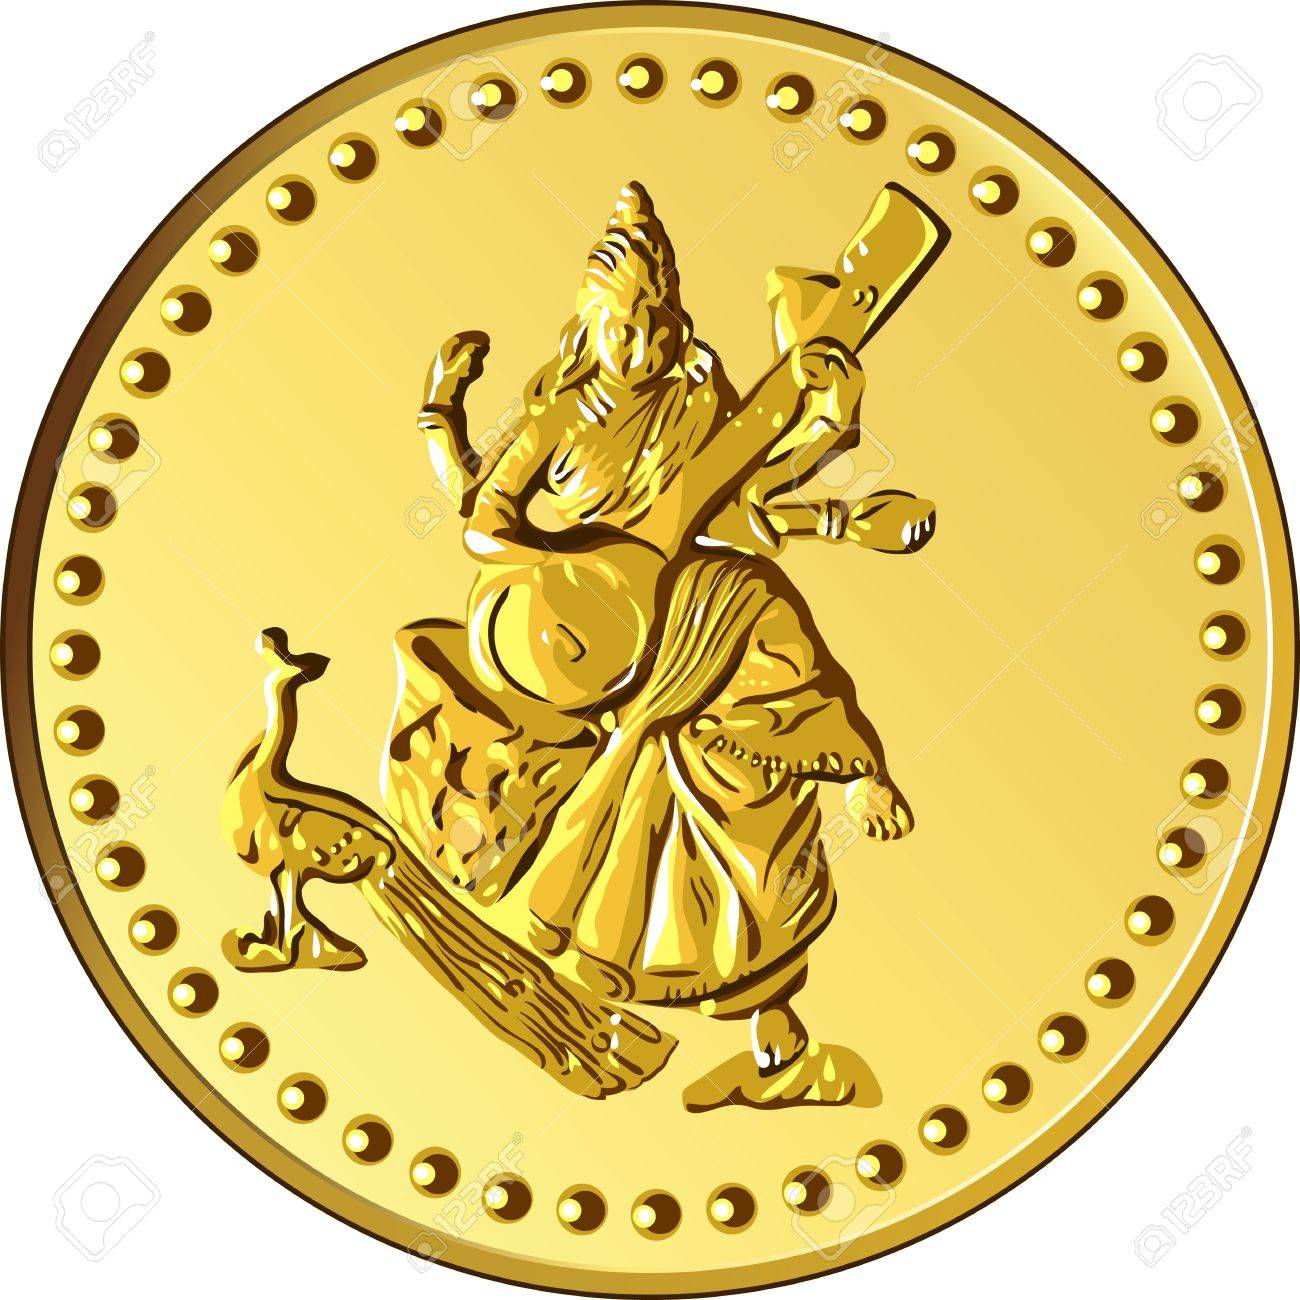 shiny gold coin with the image of dancing and playing a musical instrument of Indian four-armed Shiva Stock Vector - 11296058